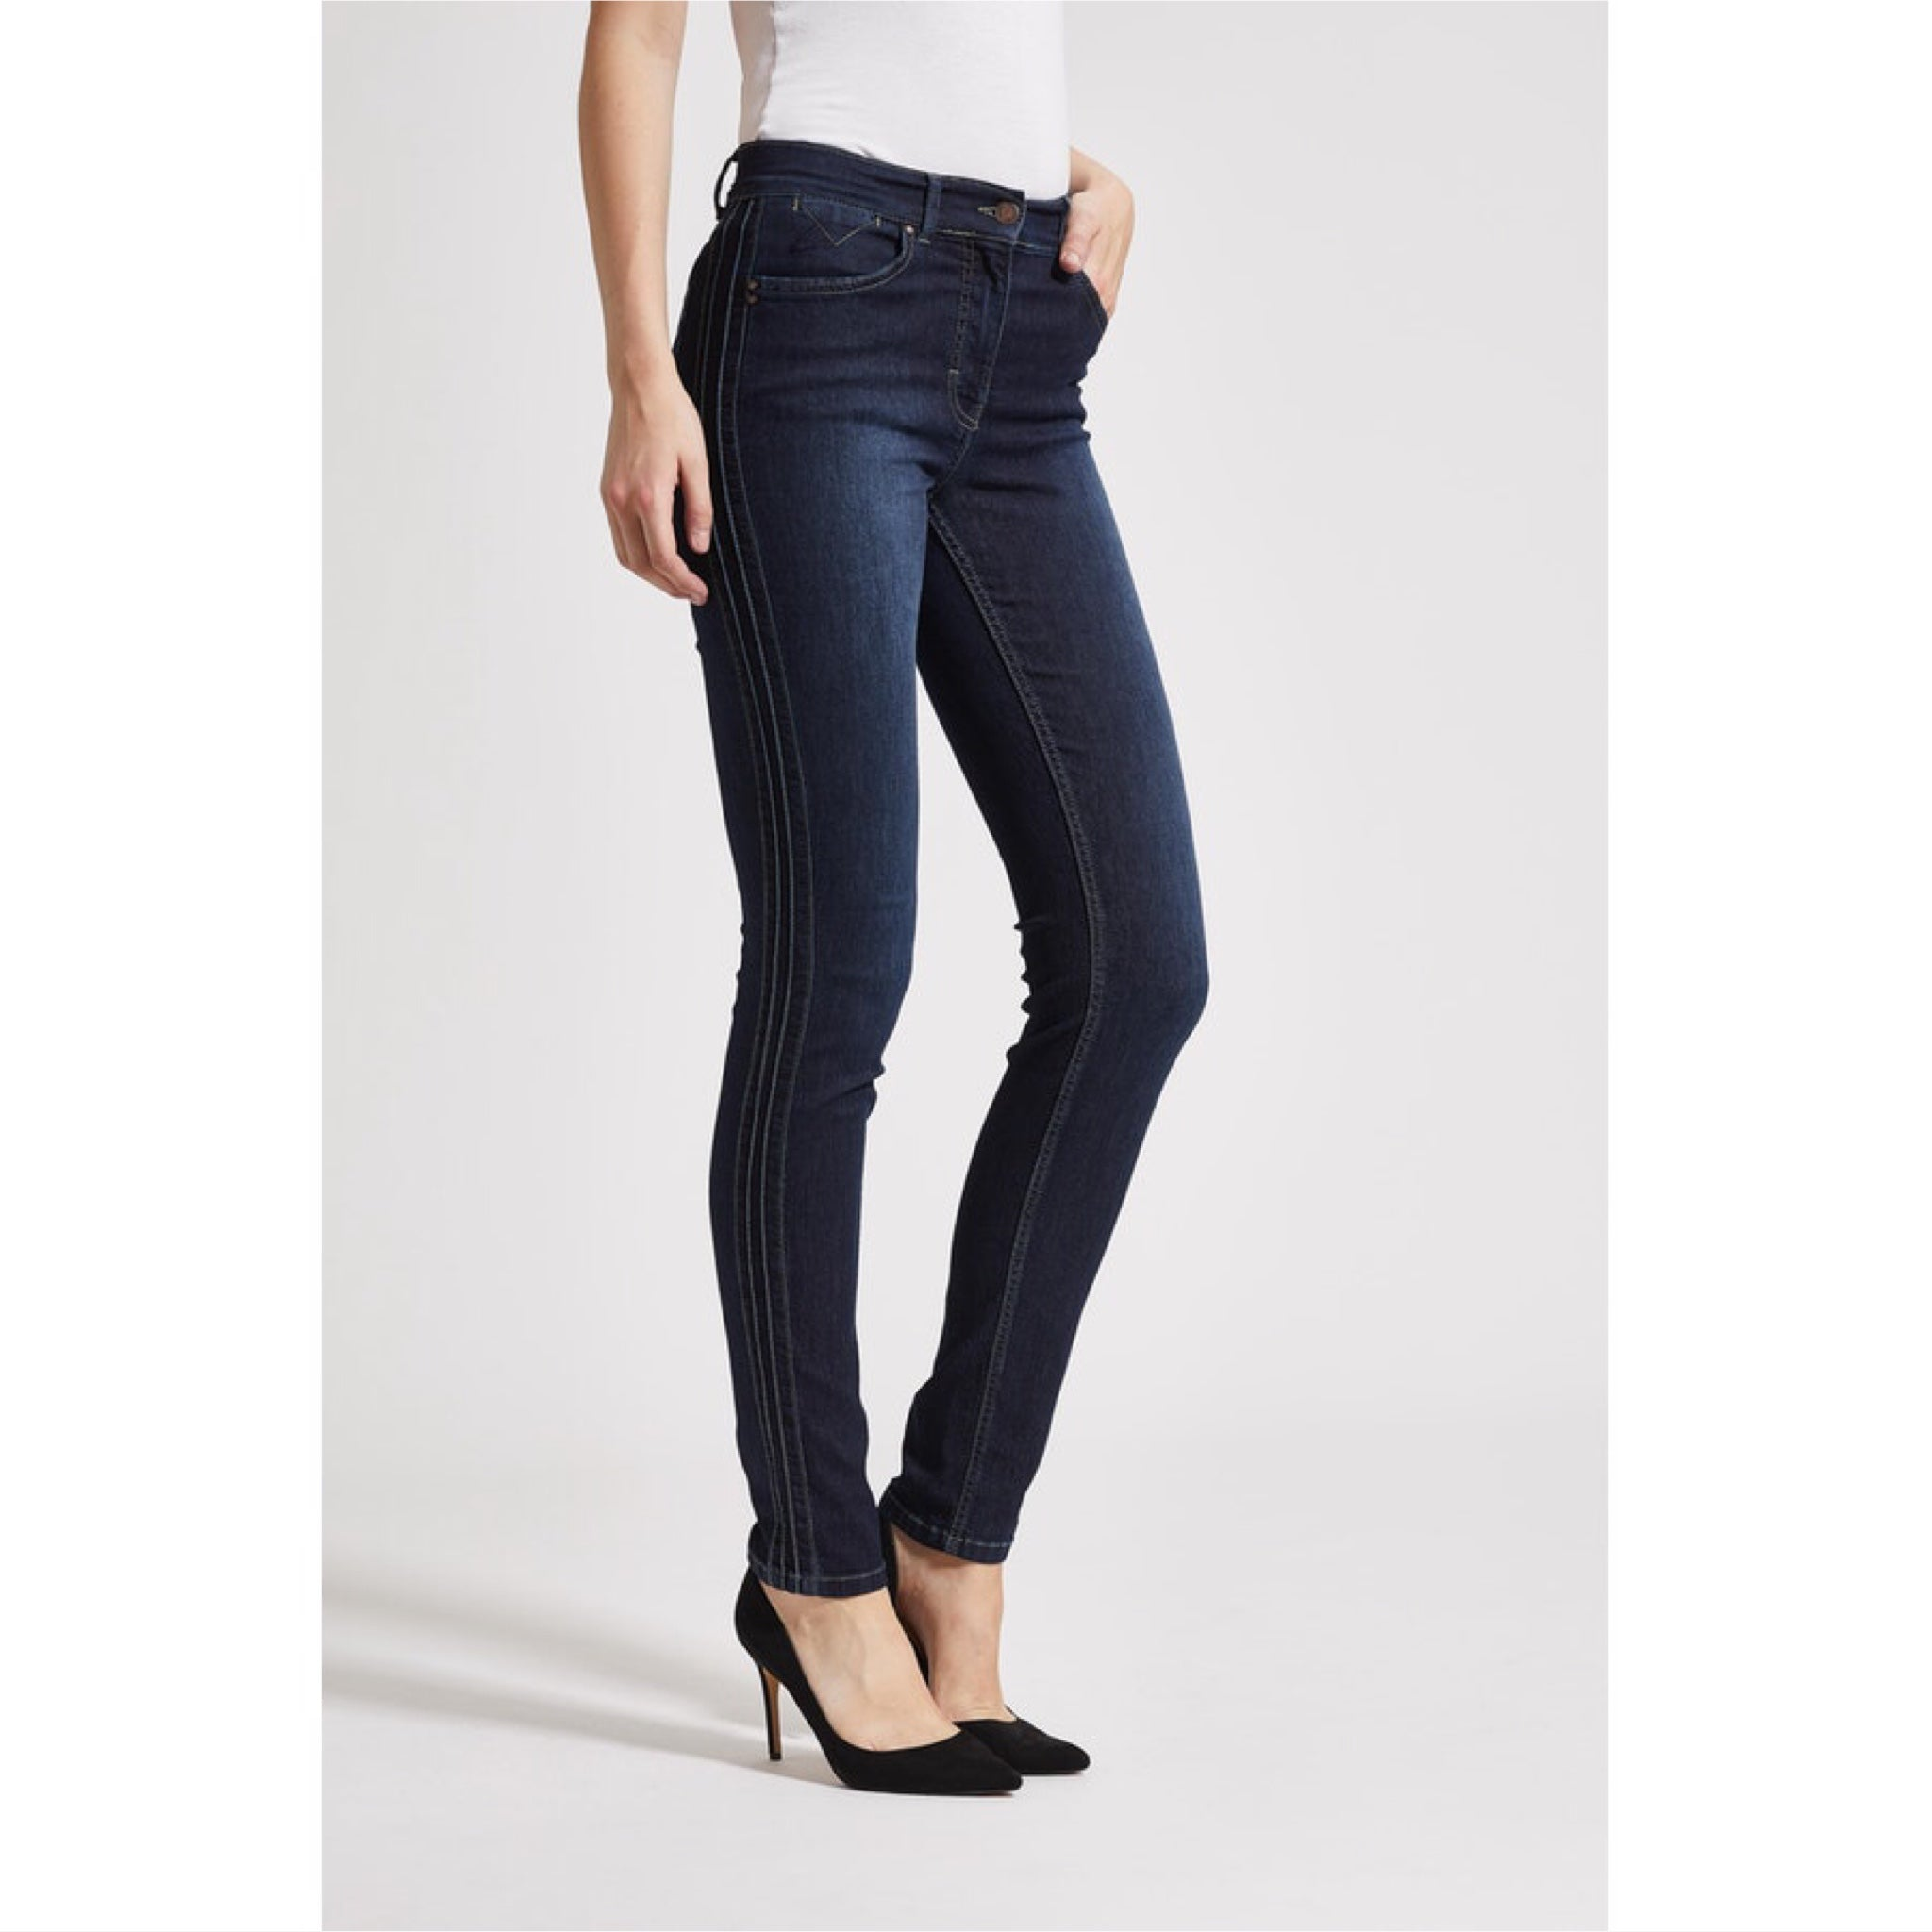 Stretchjeans Lonnie Pin denimblau